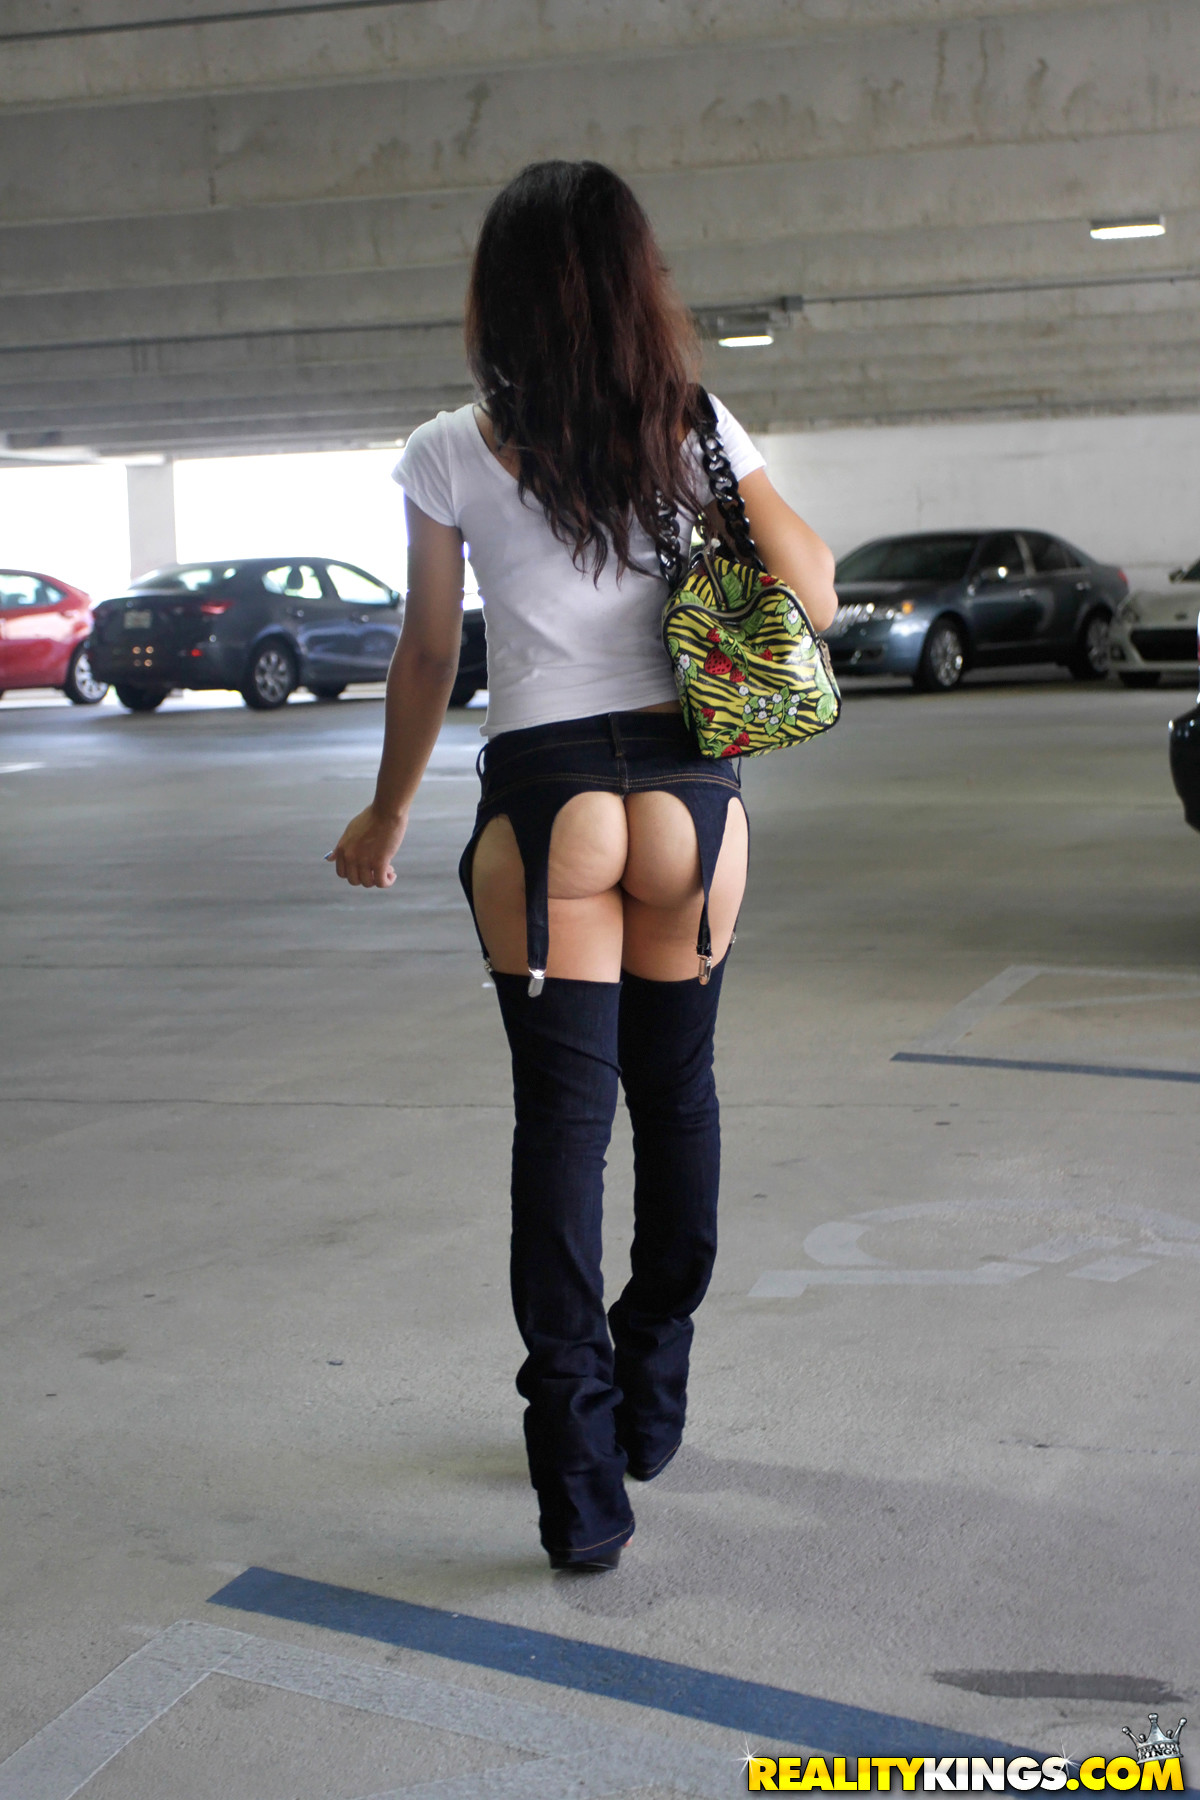 Bubble butt teen shopping in tight leggings amp uggs - 1 part 1